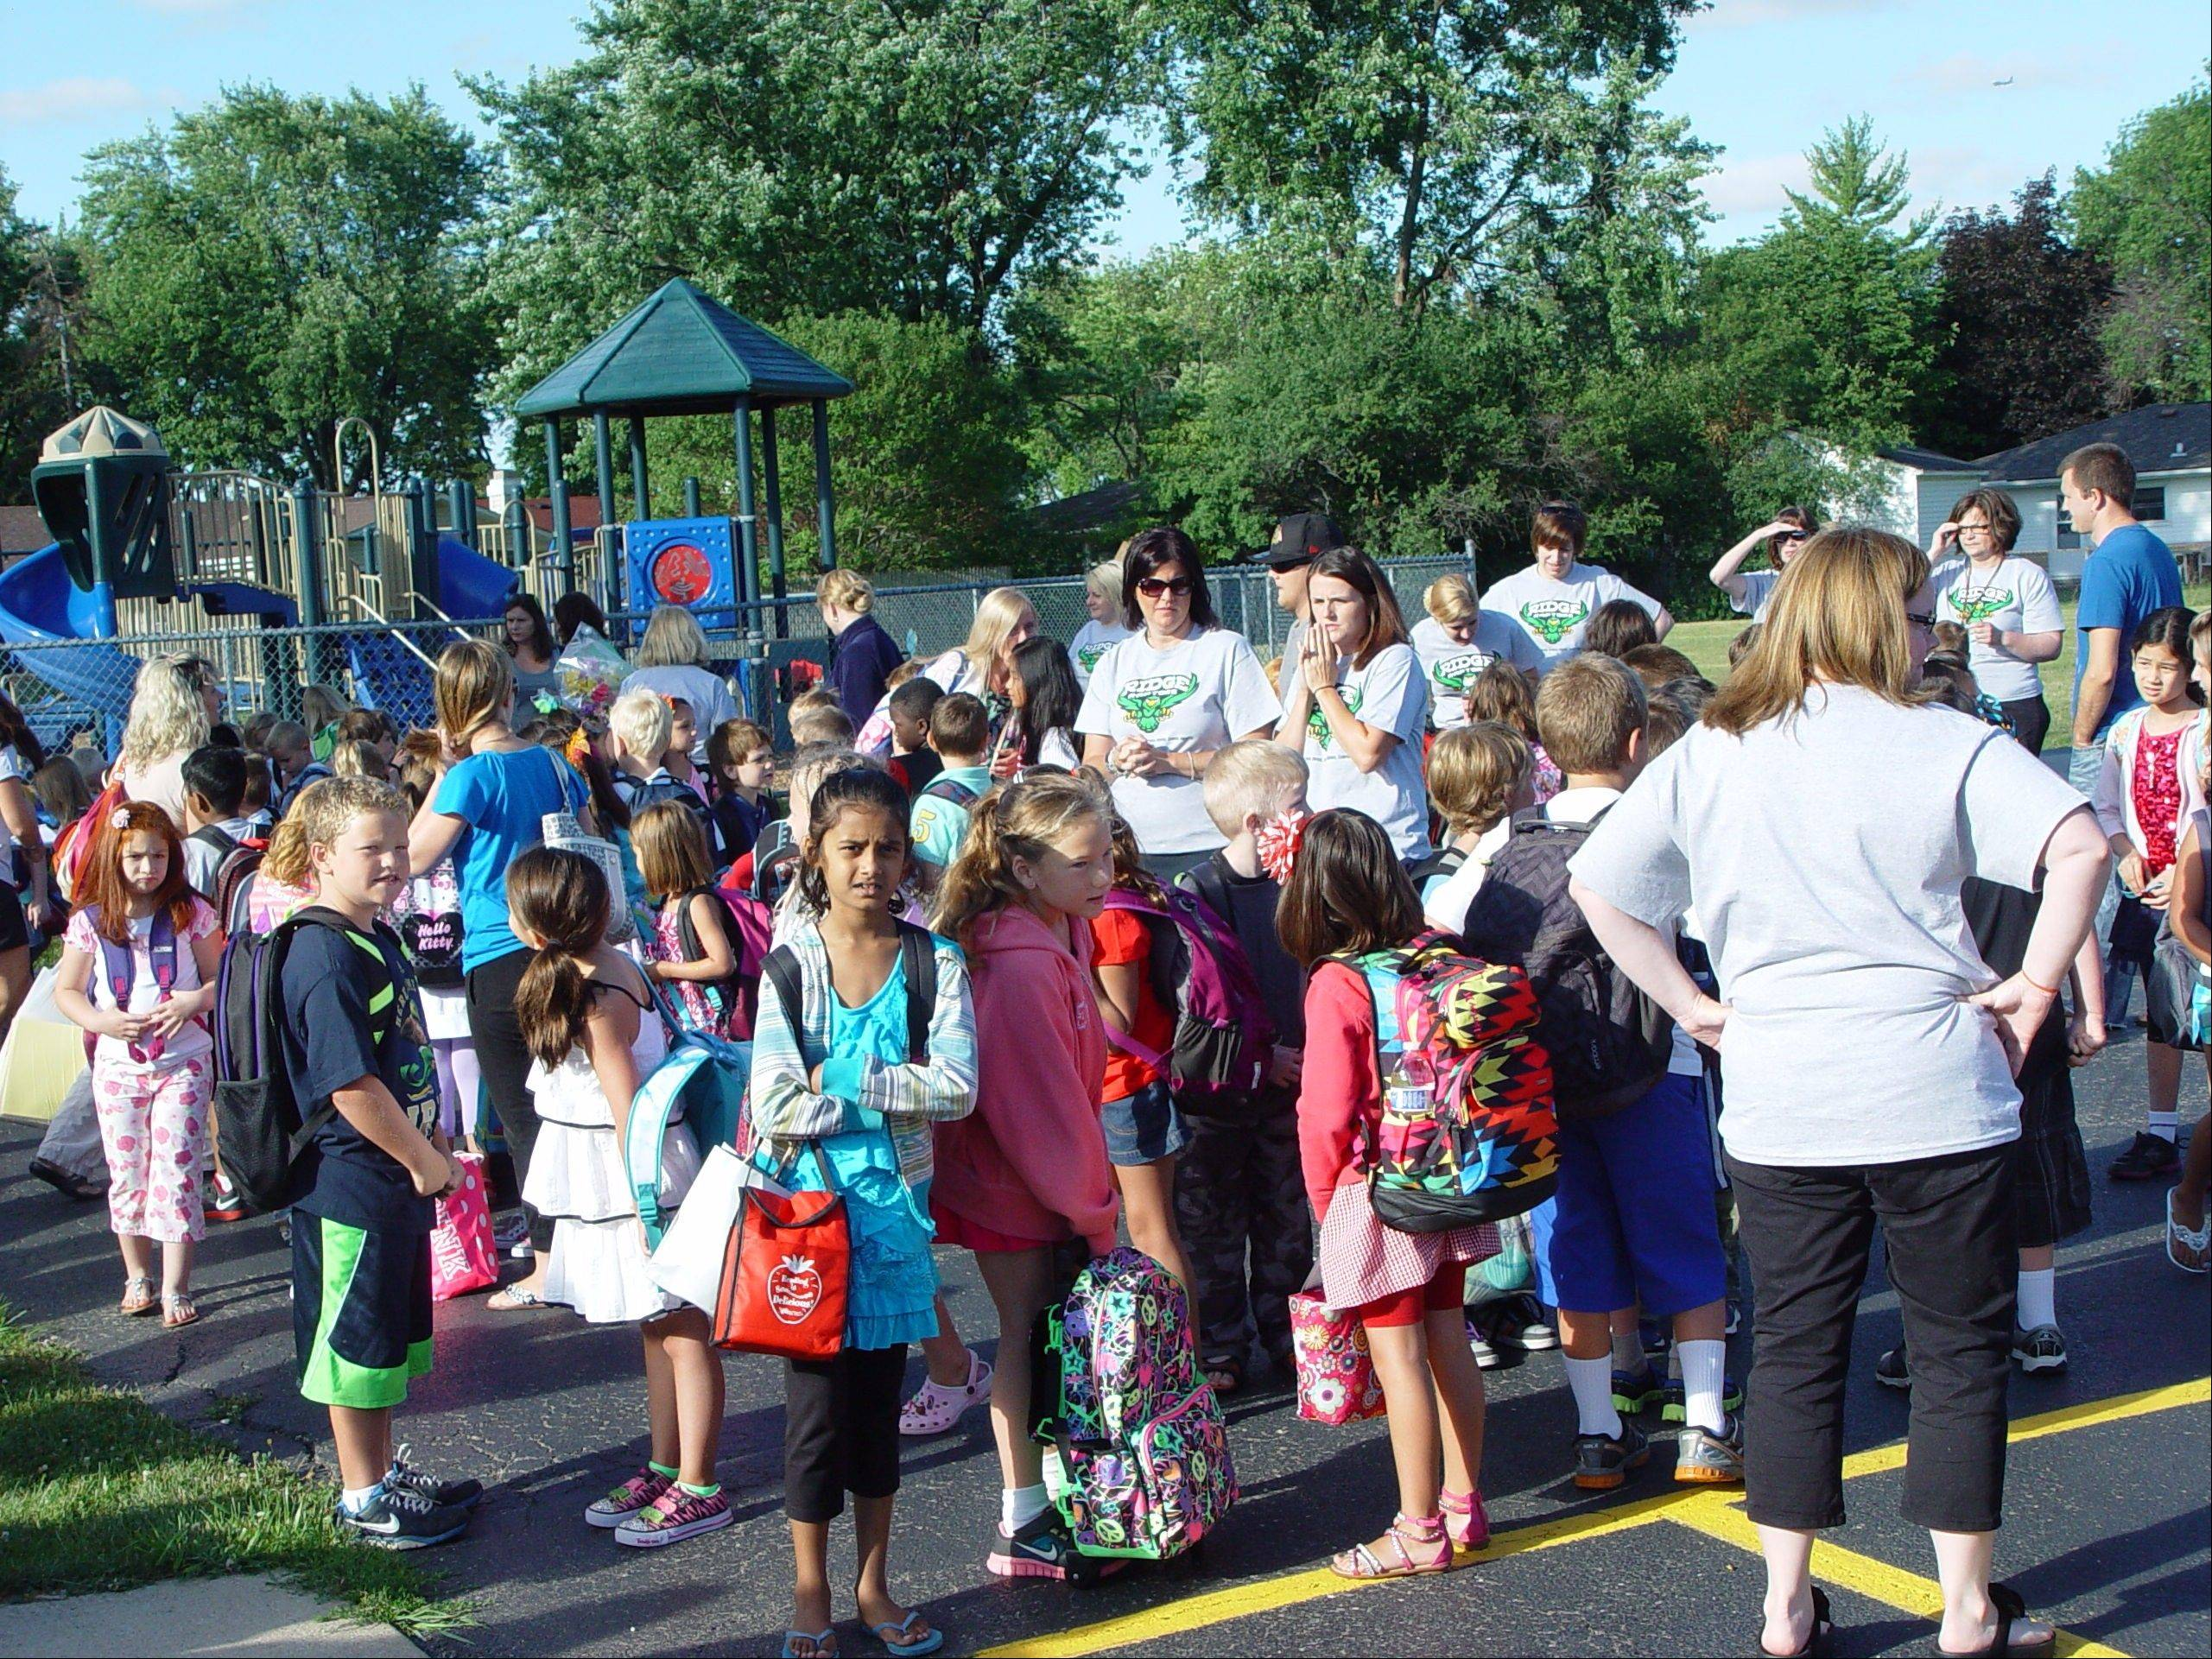 Students gather to start a new school year Wednesday at Ridge Family Center for Learning in Elk Grove Village. The school operates year-round.